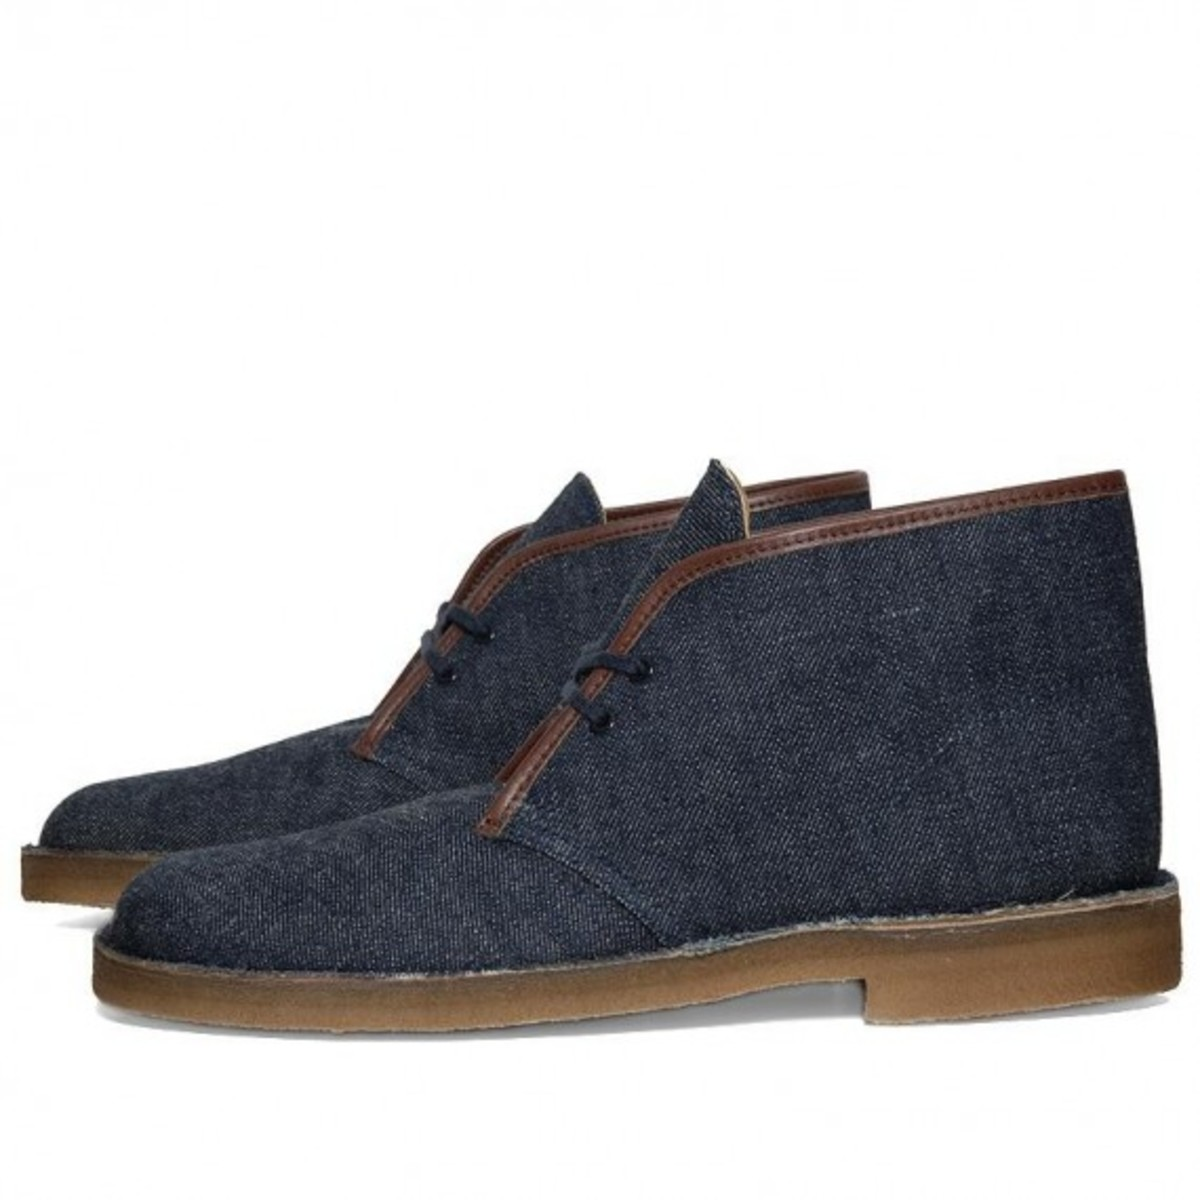 warehouse-and-co-clarks-originals-denim-desert-boot-02